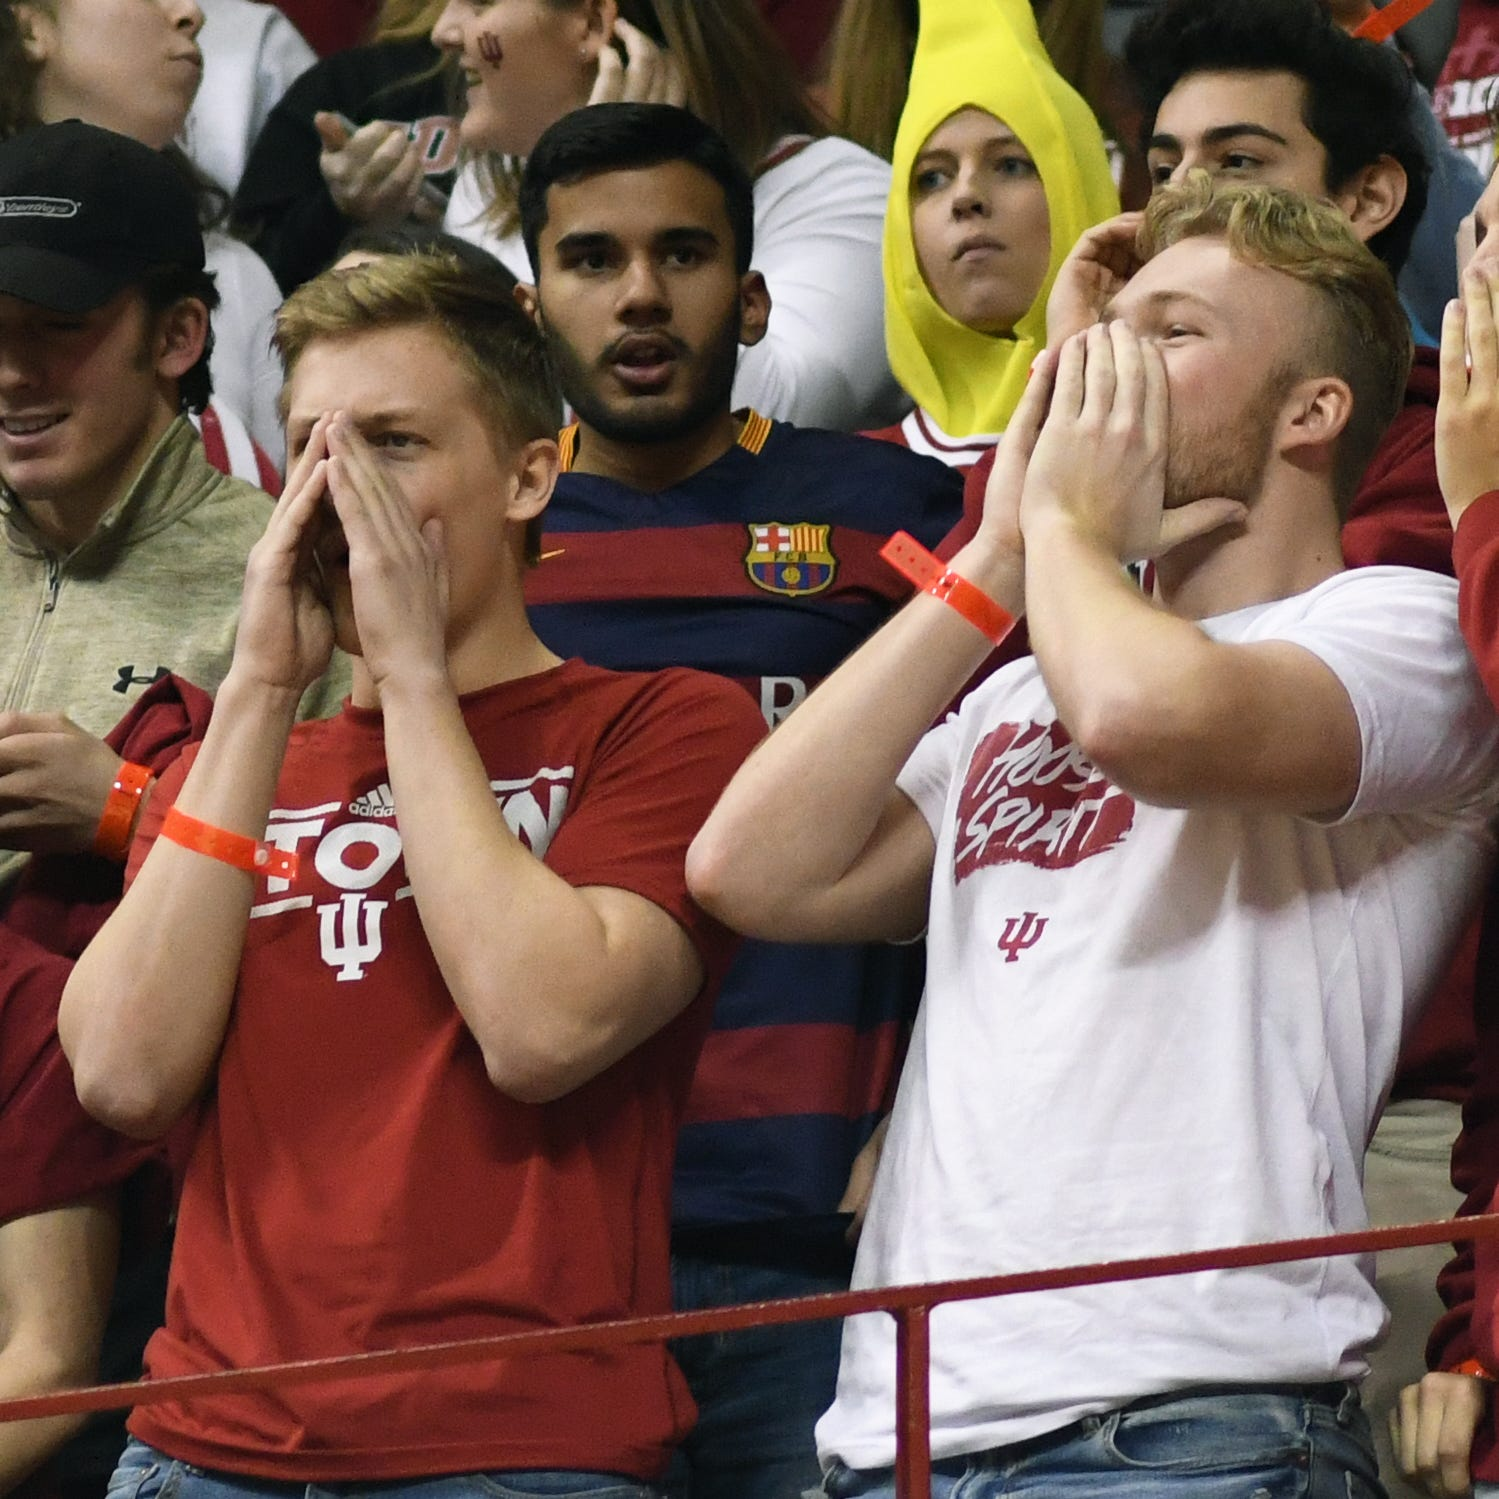 Alan Henderson: IU basketball profane chants 'need to be shut down'